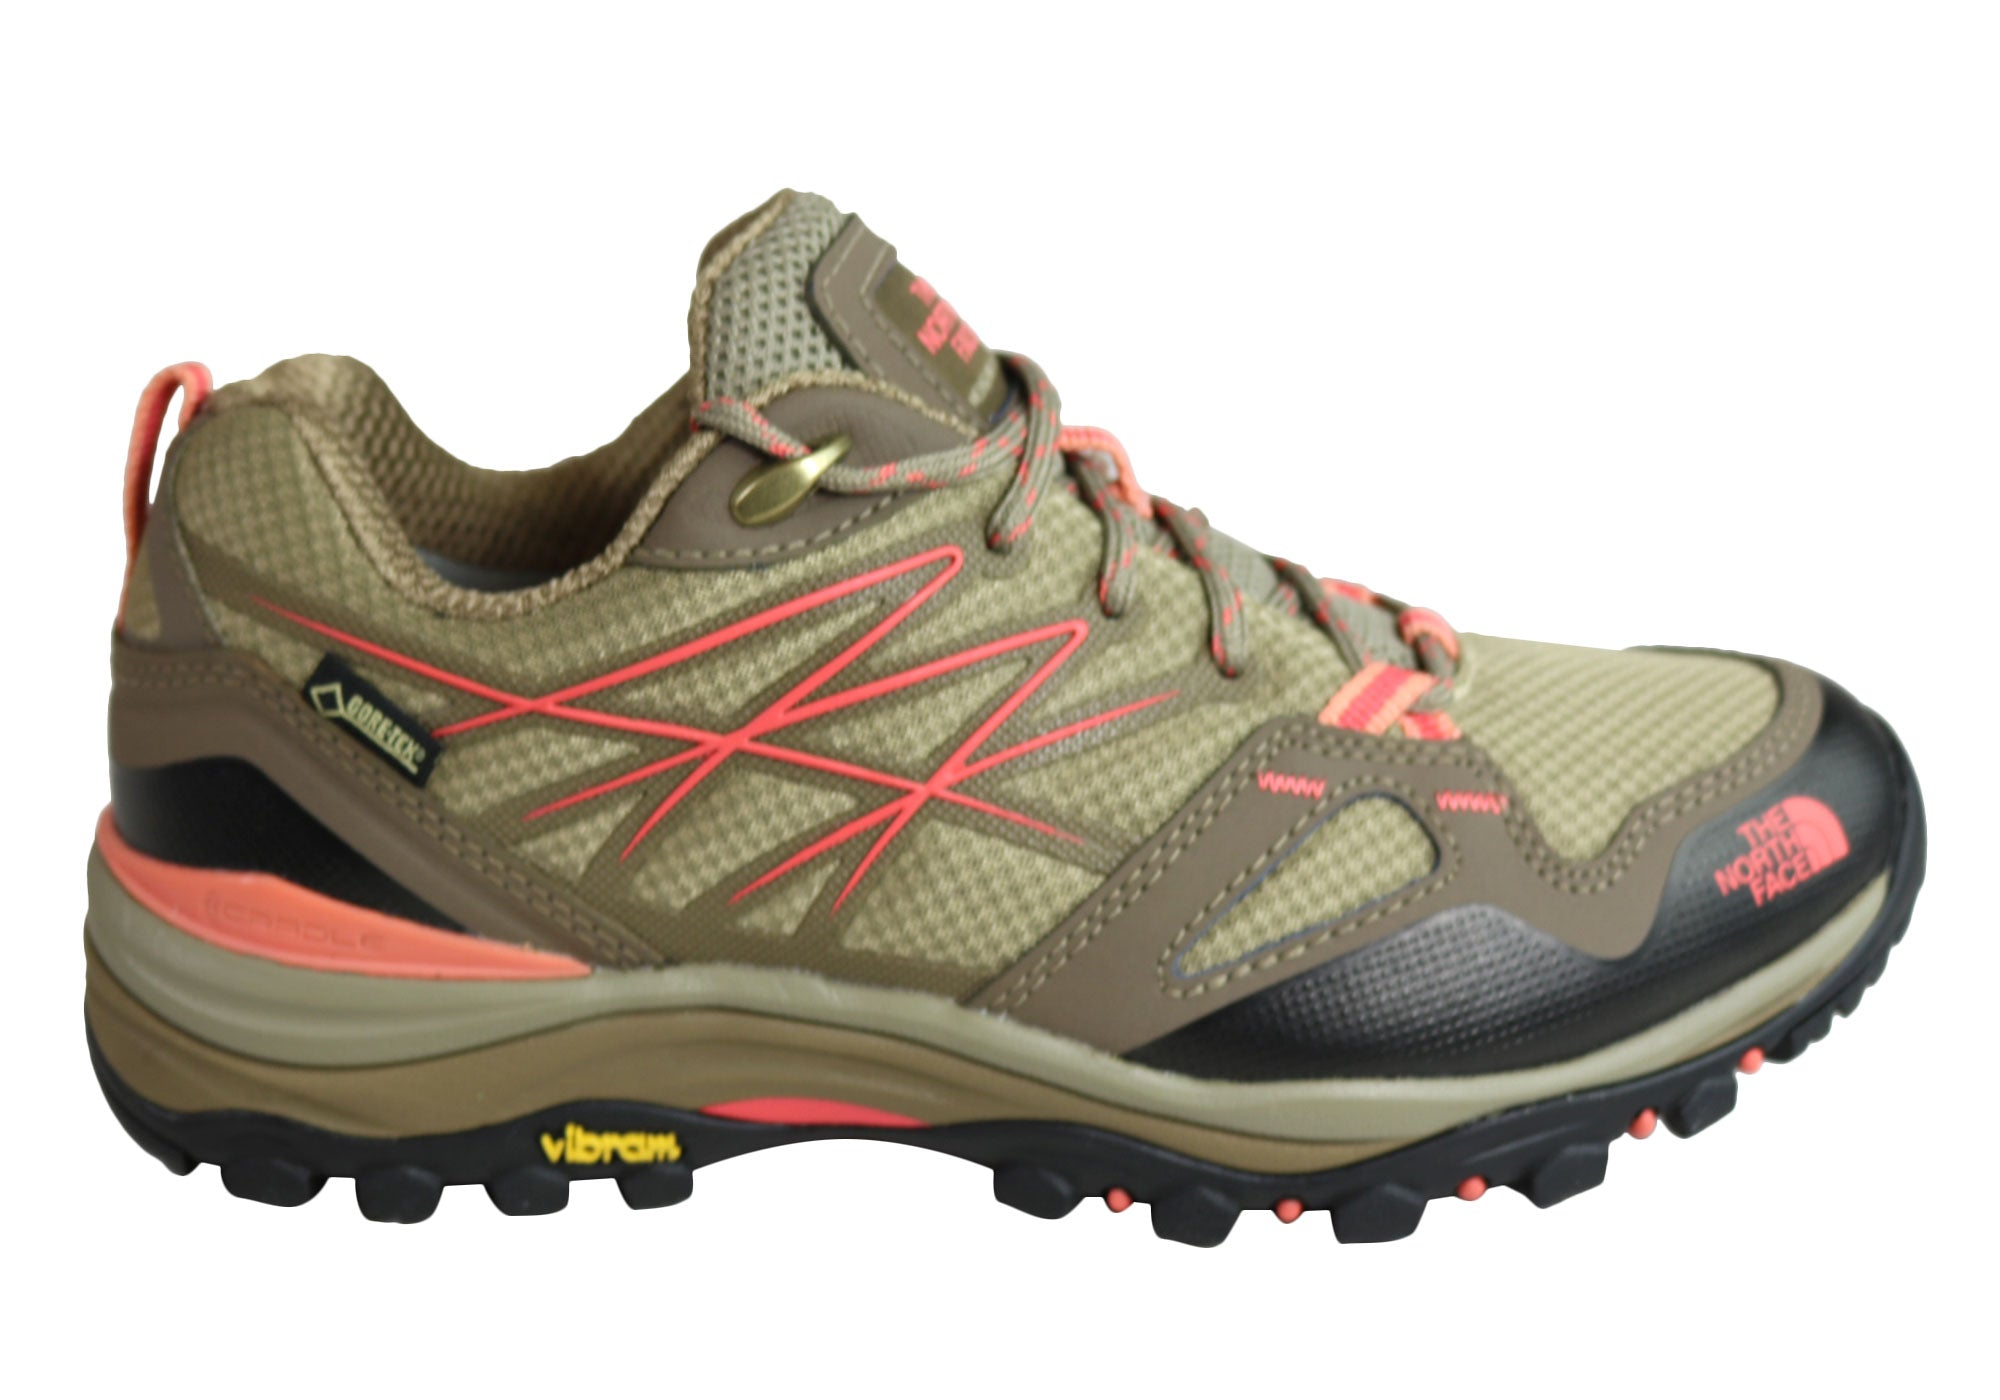 53e69df70 The North Face Womens Comfortable Hedgehog Fastpack GTX Hiking Shoes ...